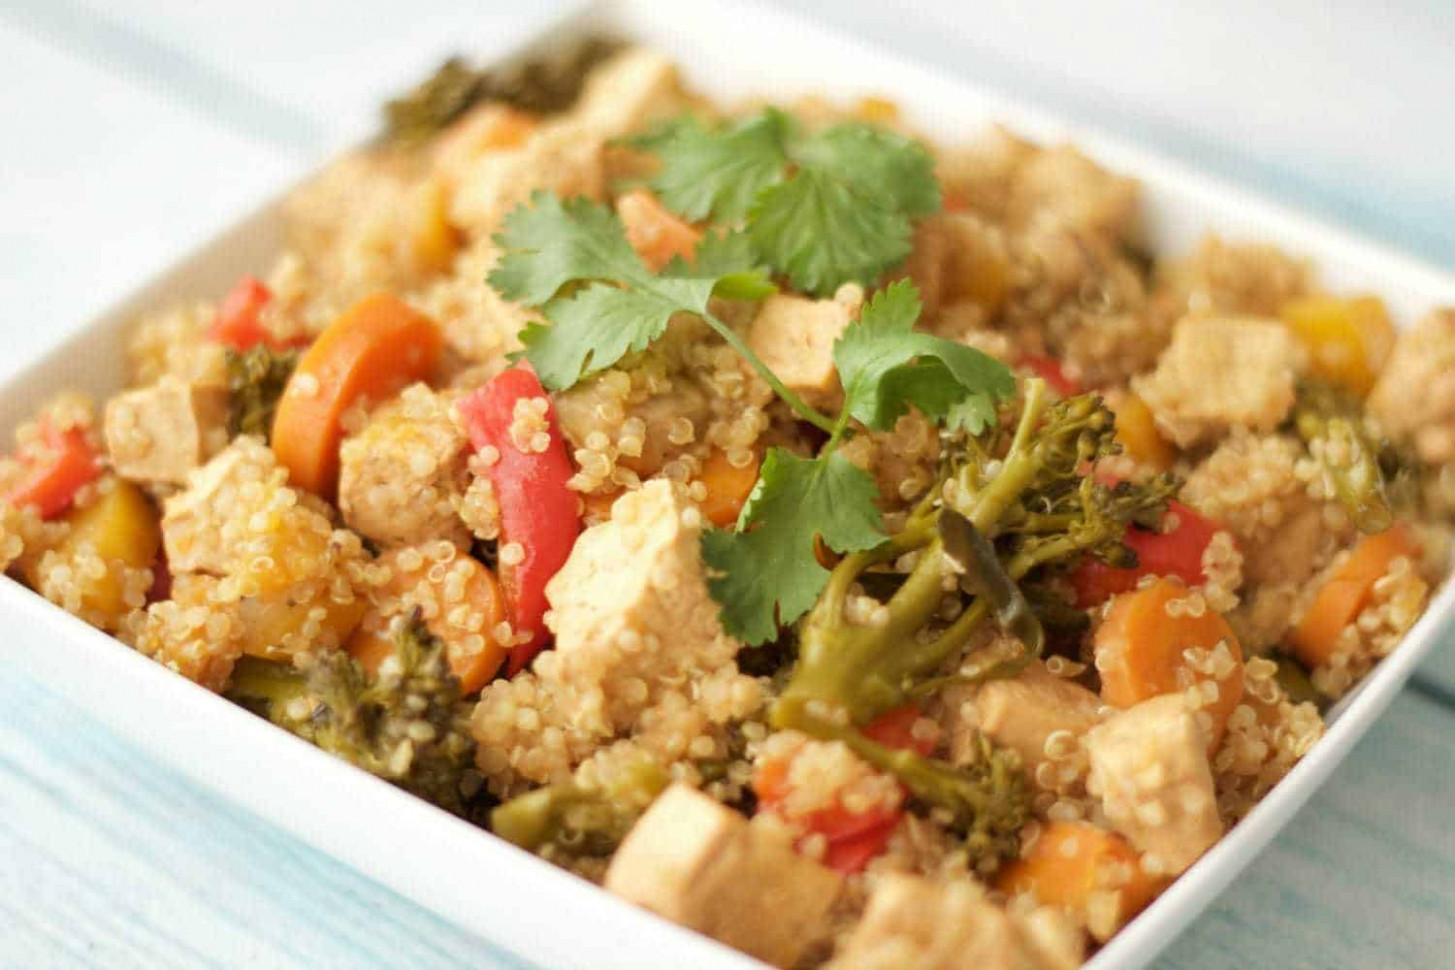 Baked Tofu and Vegetable Casserole with Quinoa - recipes with quinoa vegetarian